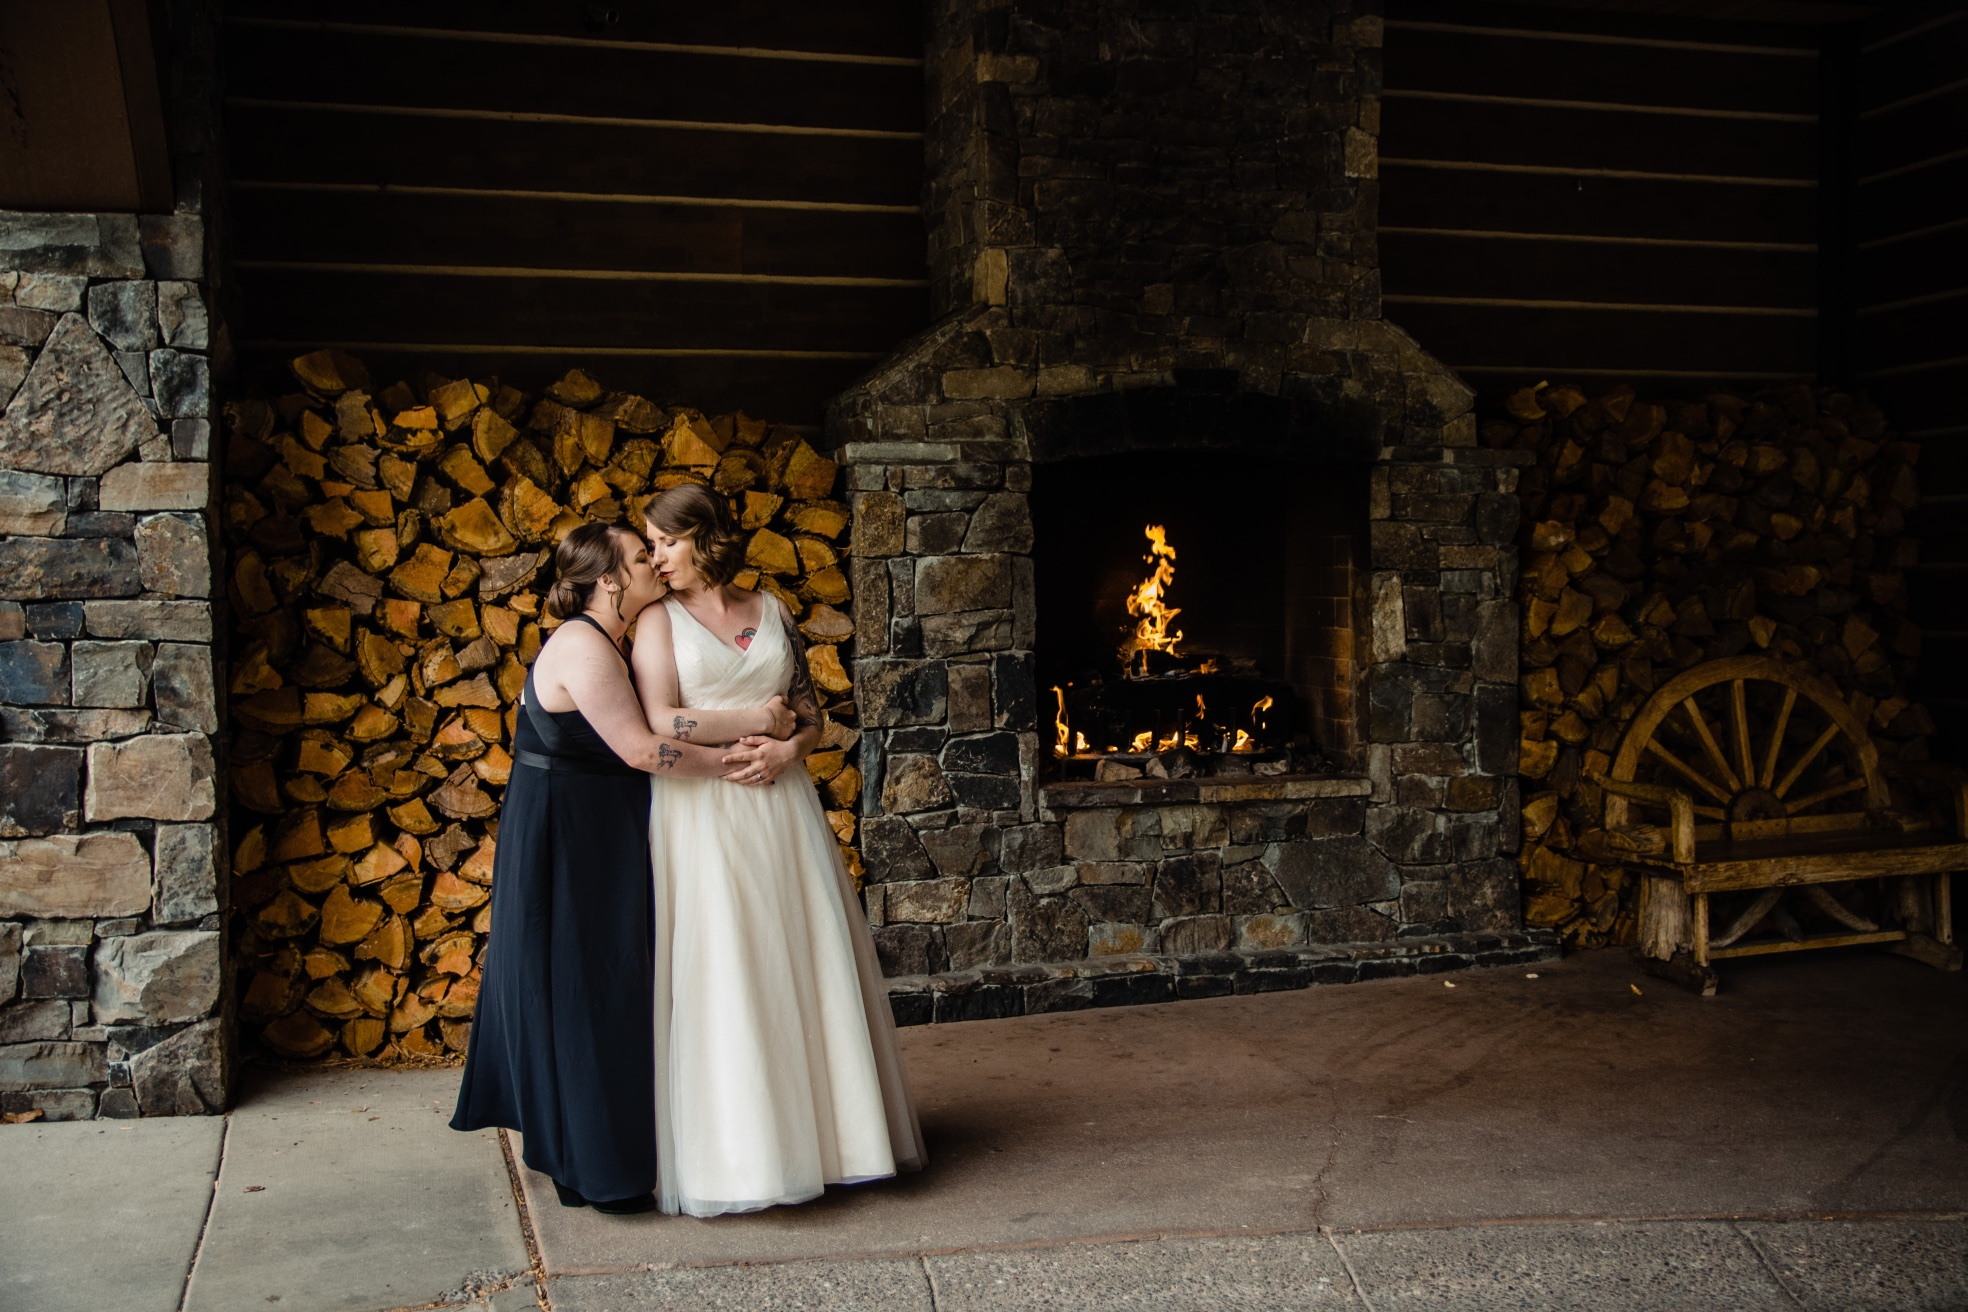 lindseyjanephoto_wedding0073.jpg